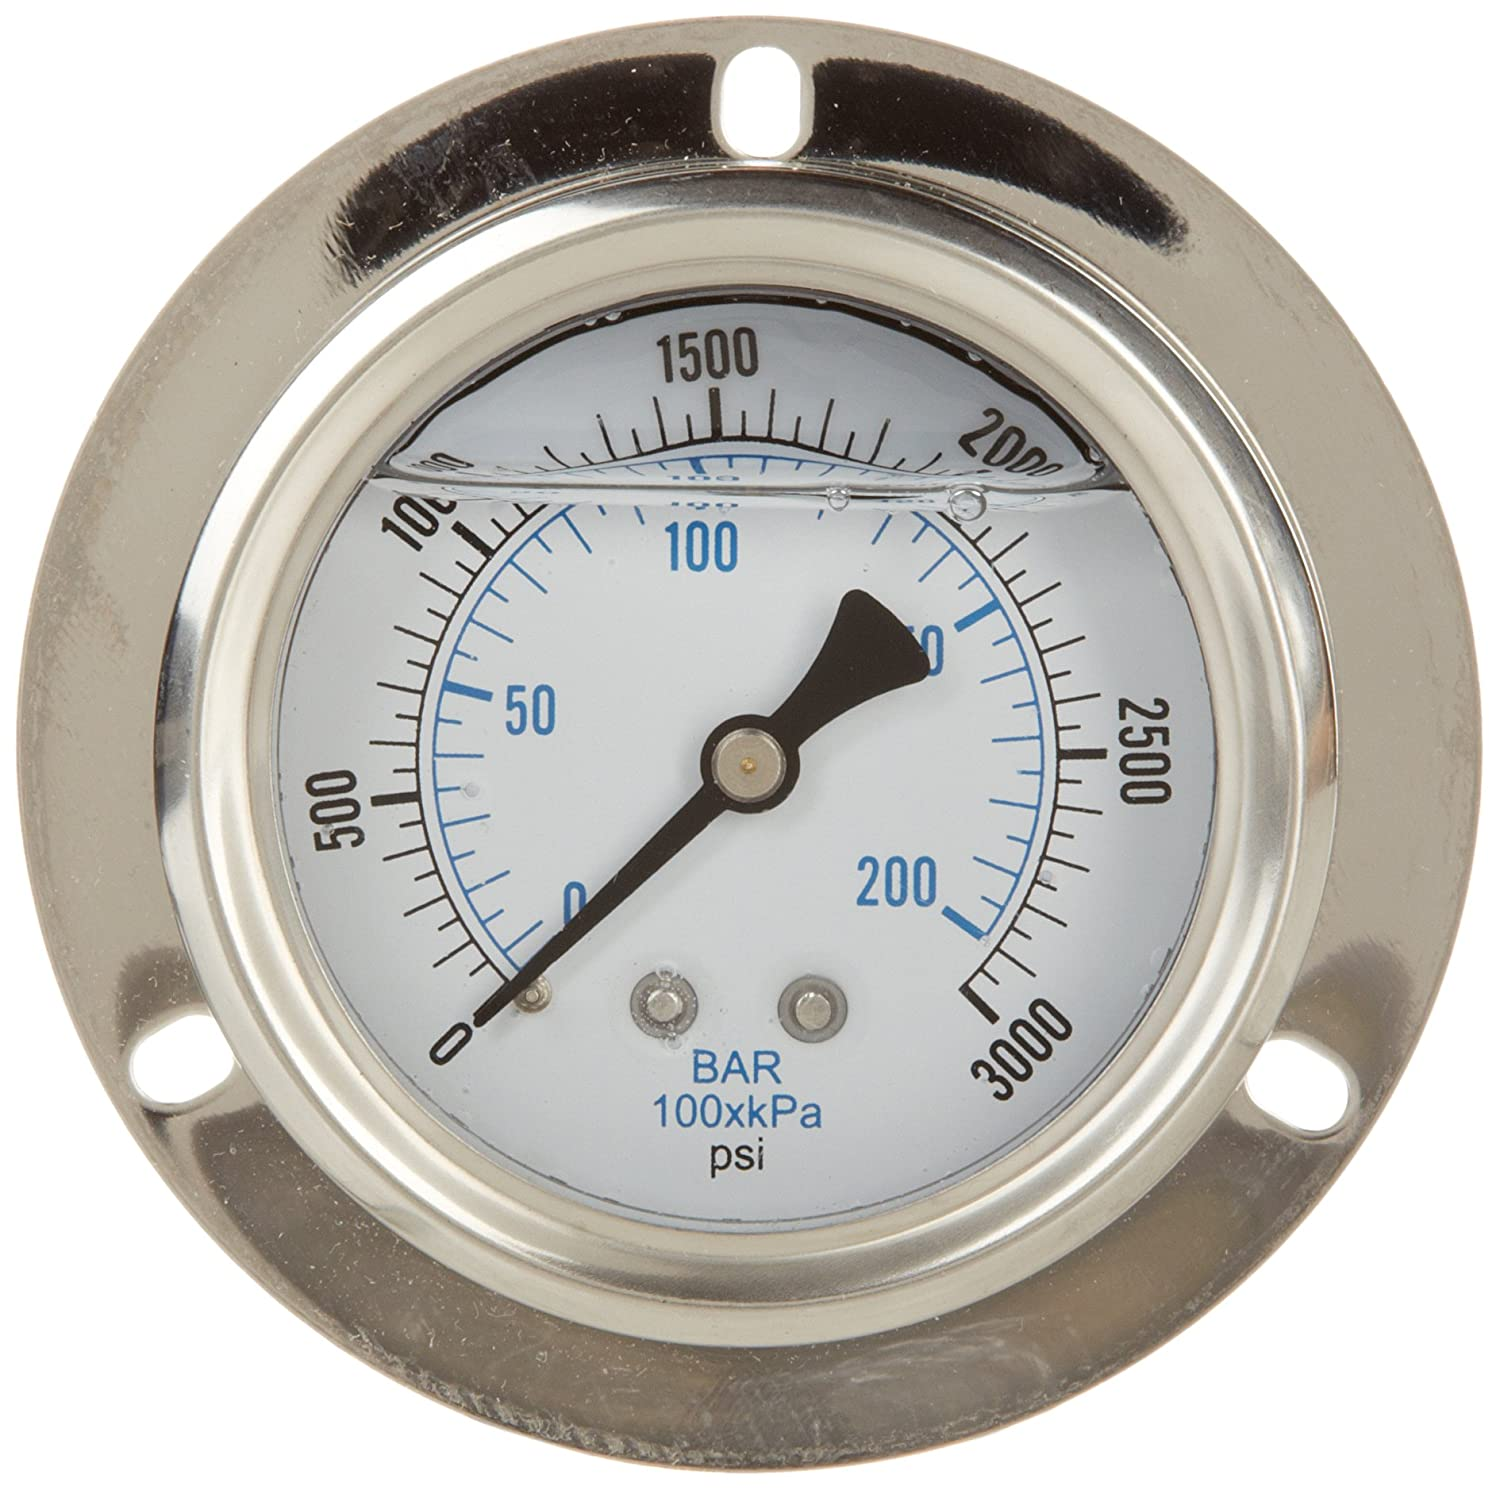 PIC Gauge PRO 204L 254P Glycerin Filled Industrial Front Flanged Panel Mount Pressure Gauge with Stainless Steel Case Brass Internals Plastic Lens 2 1 2 Dial Size 1 4 Male NPT 0 3000 psi